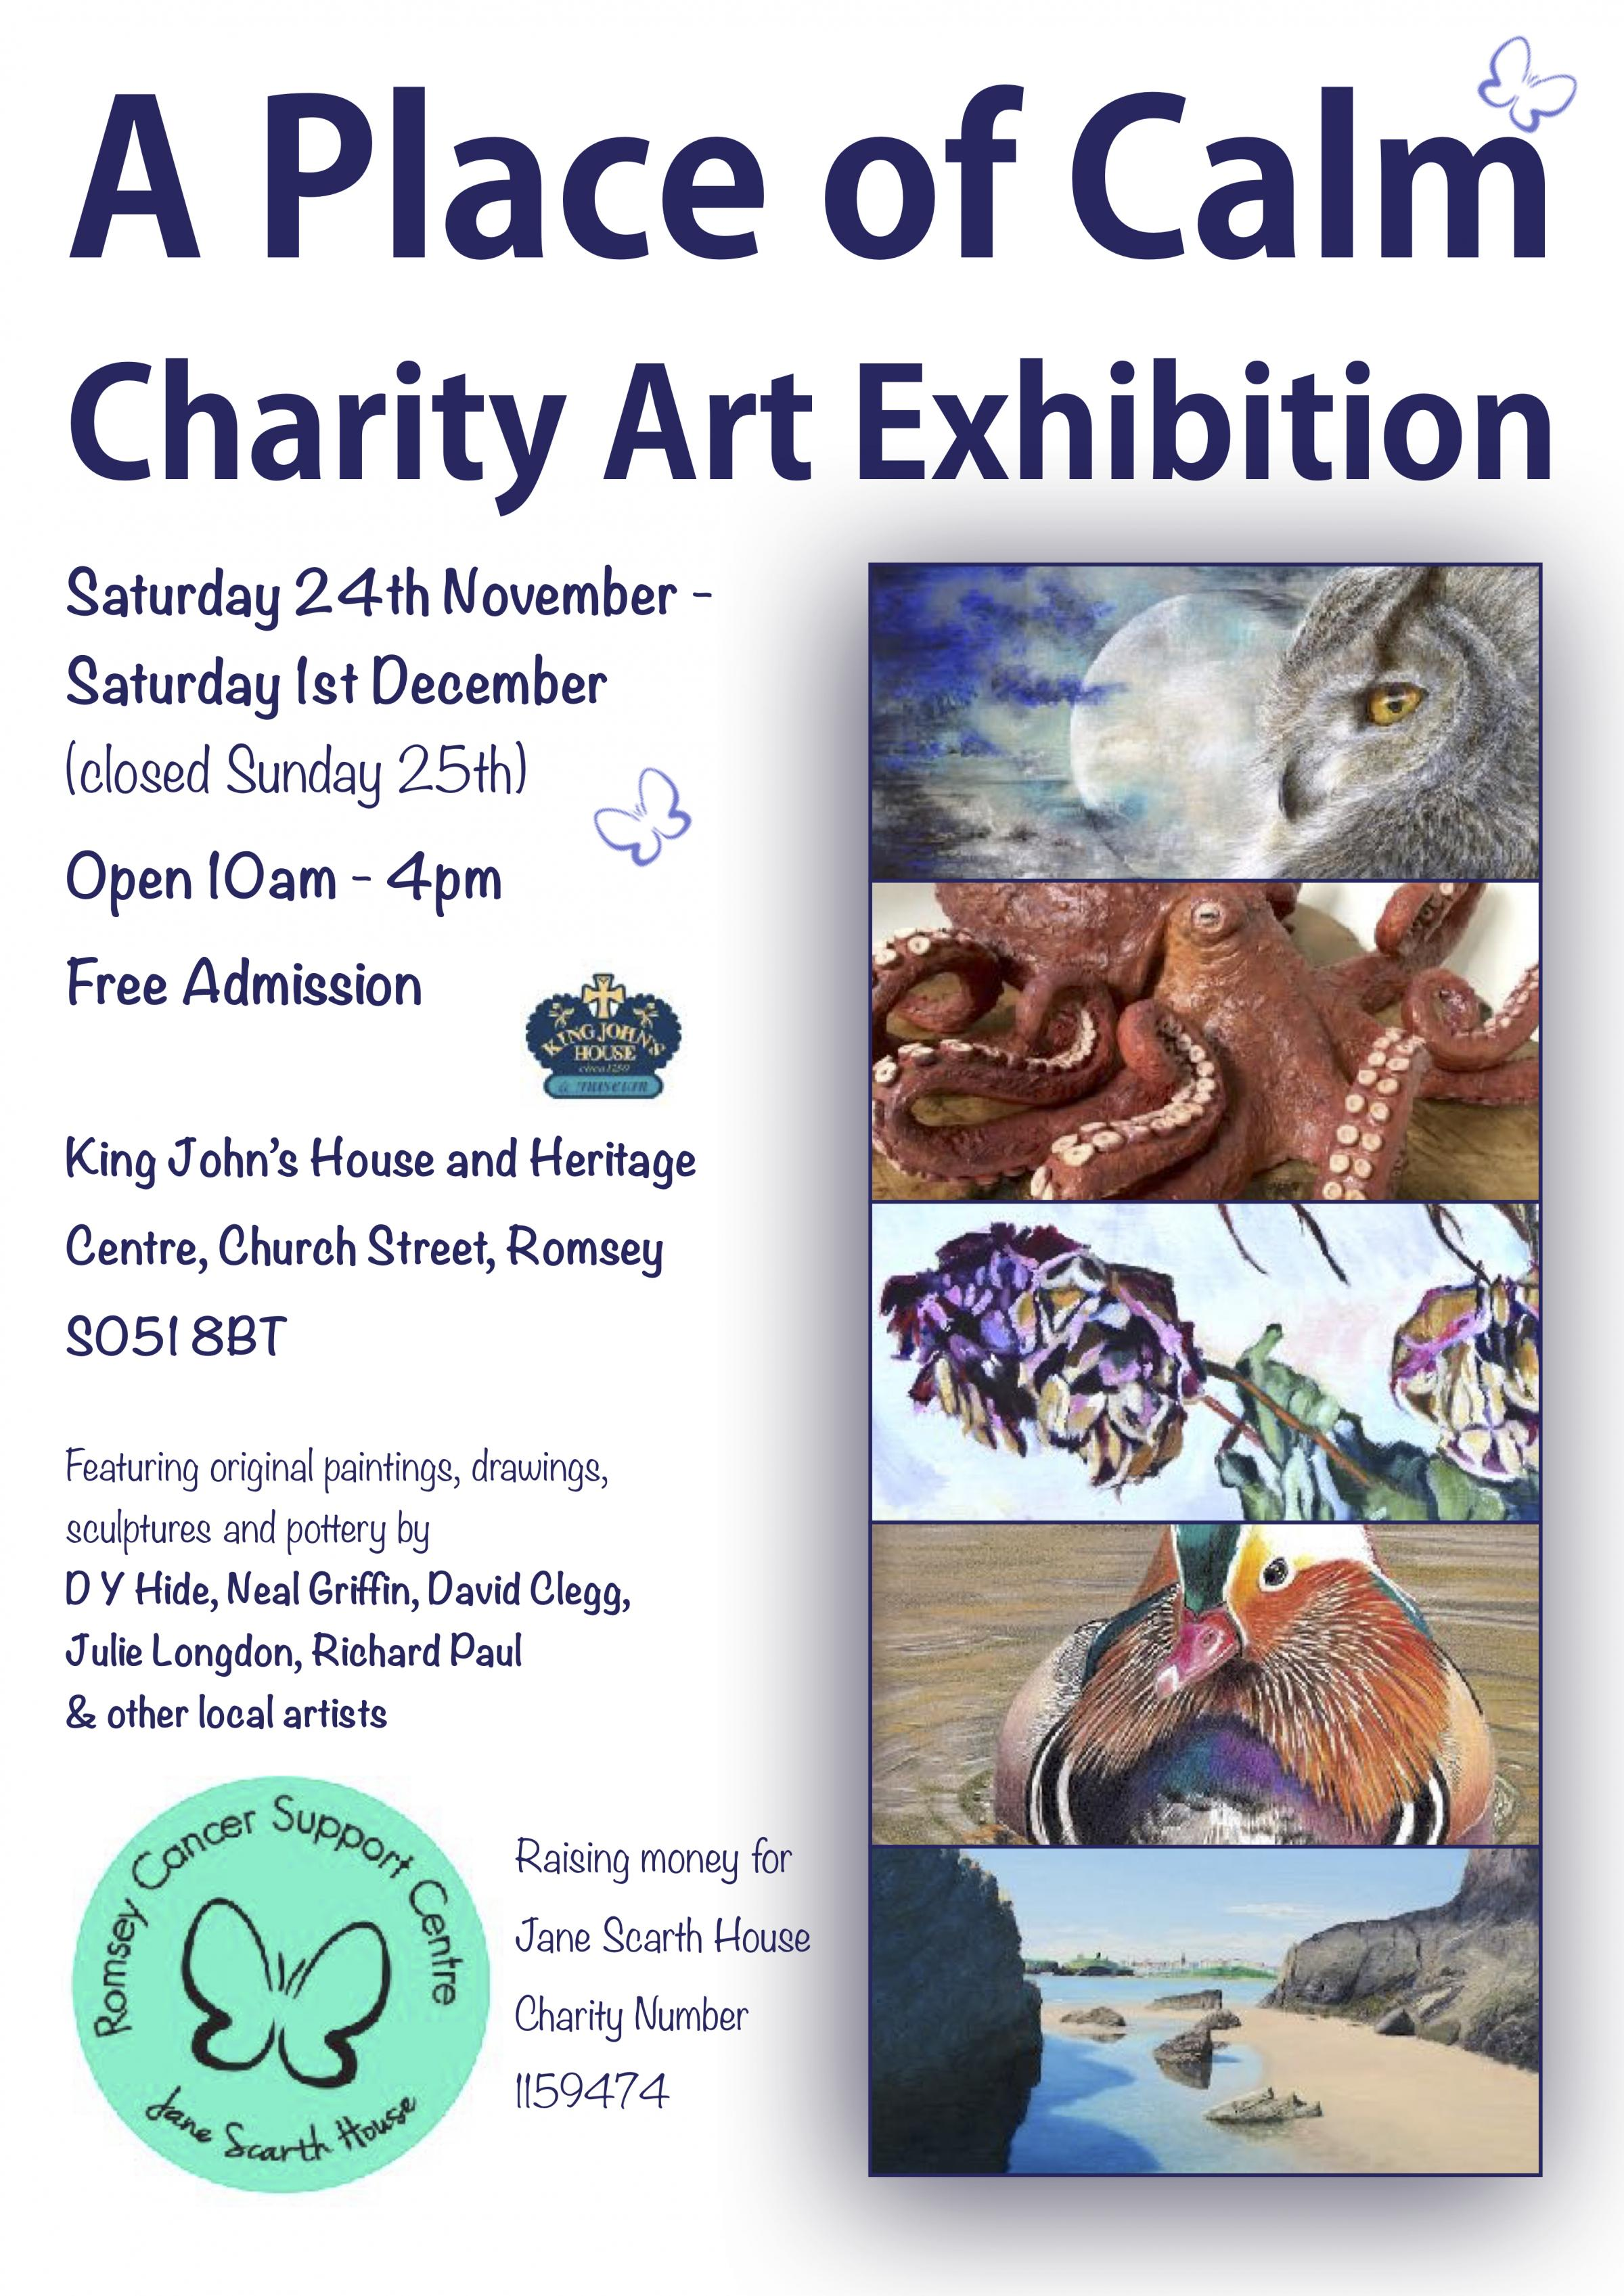 A Place of Calm Charity Art Exhibition